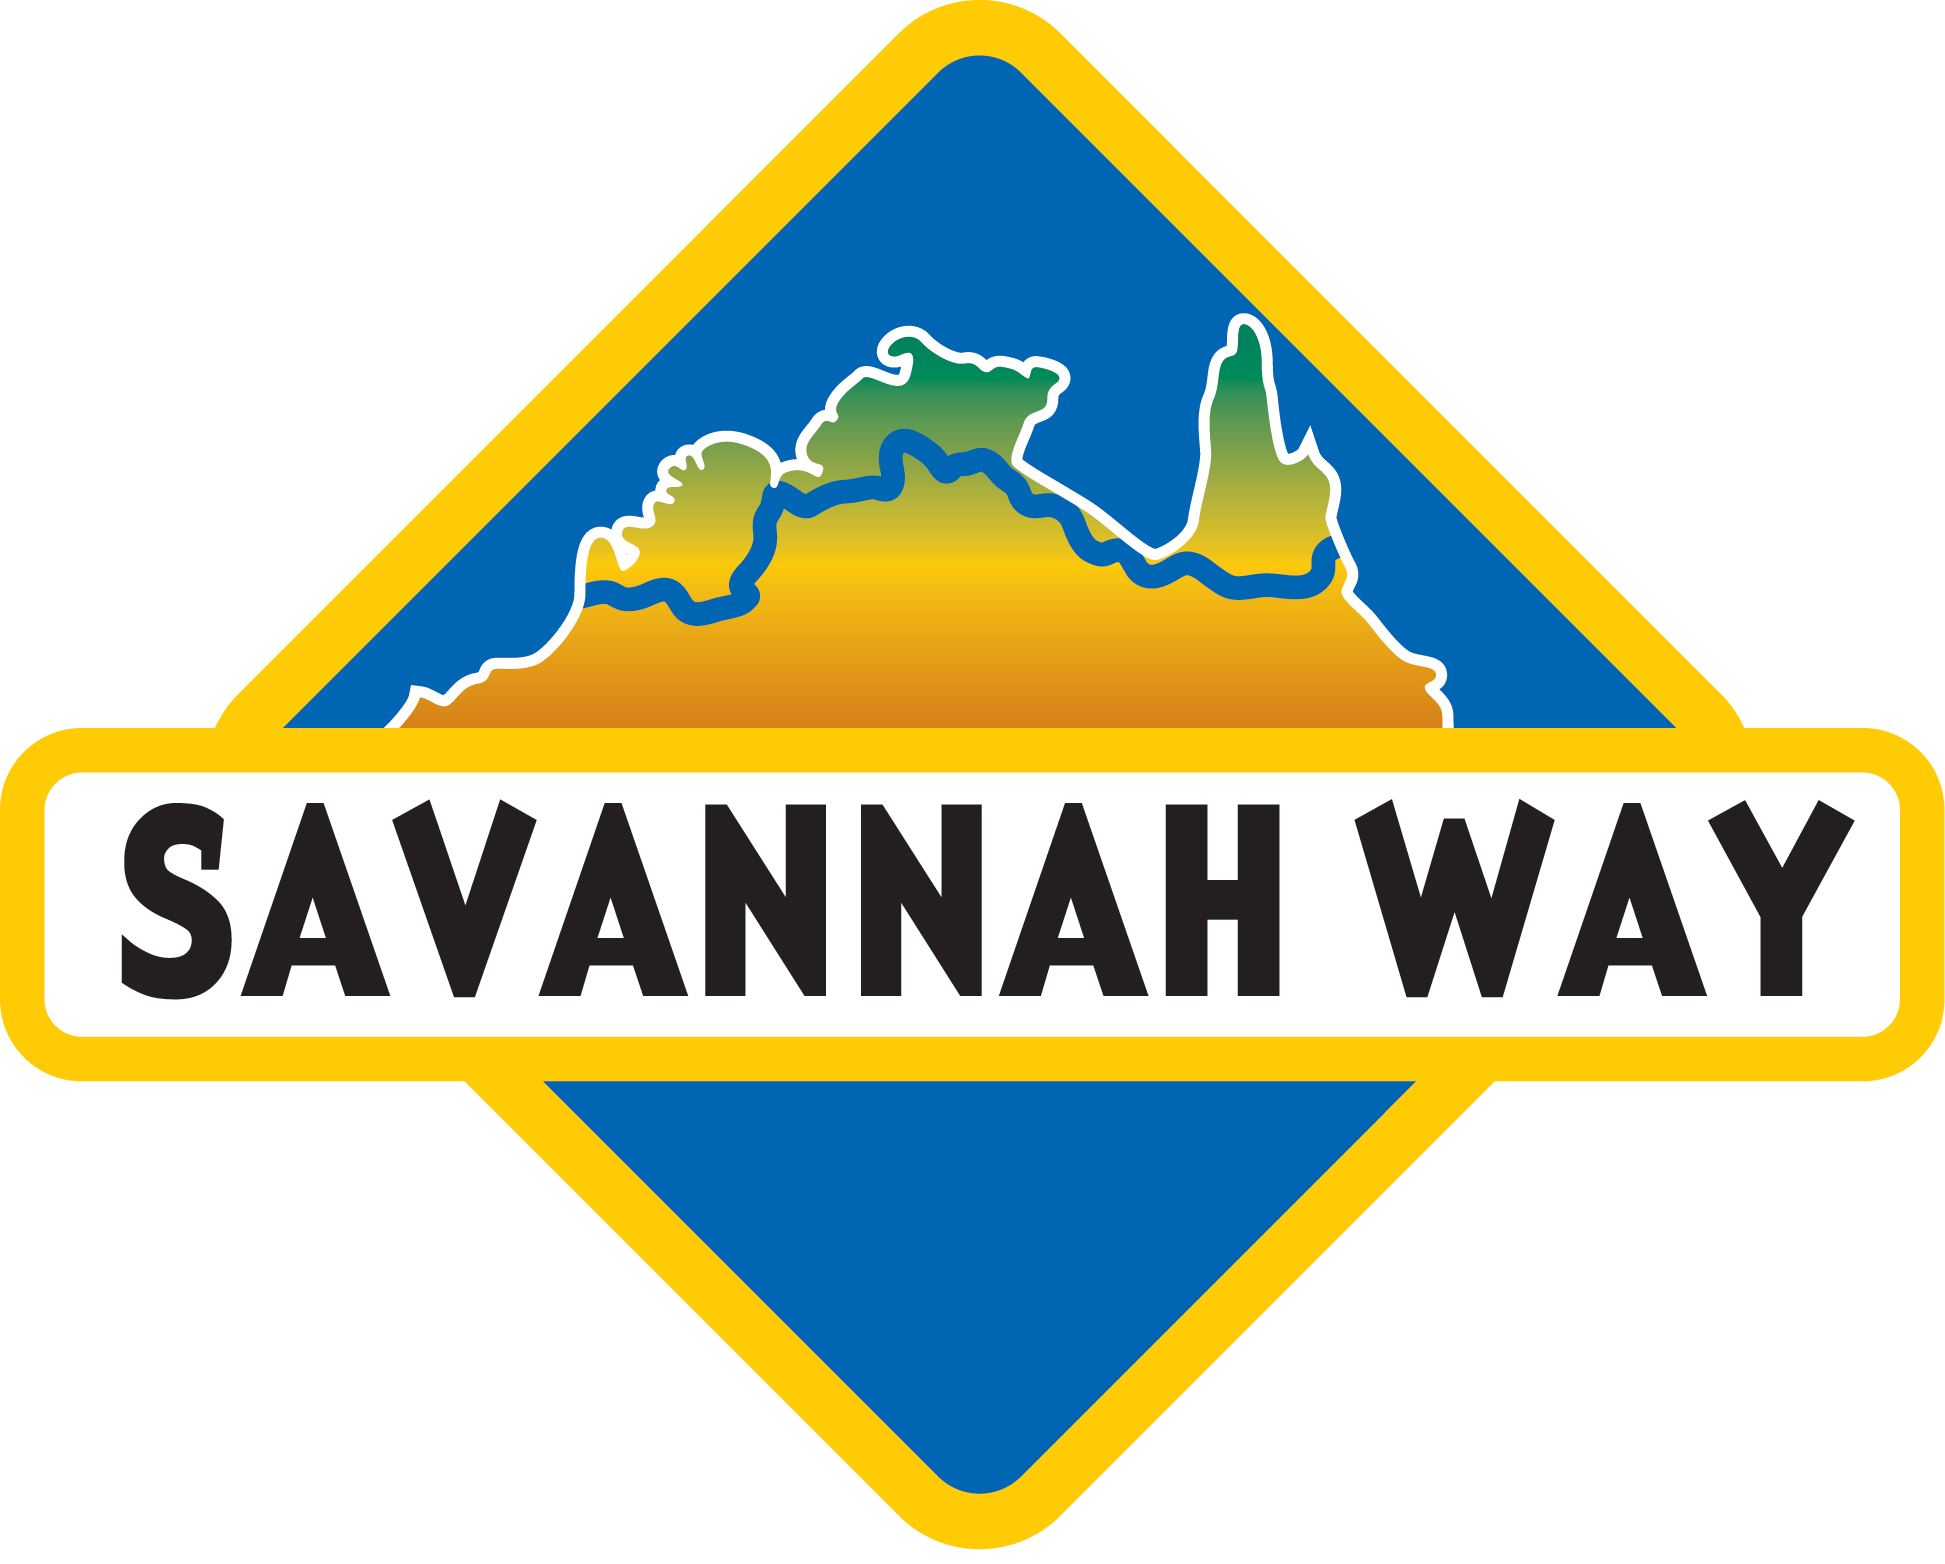 The Savannah Way